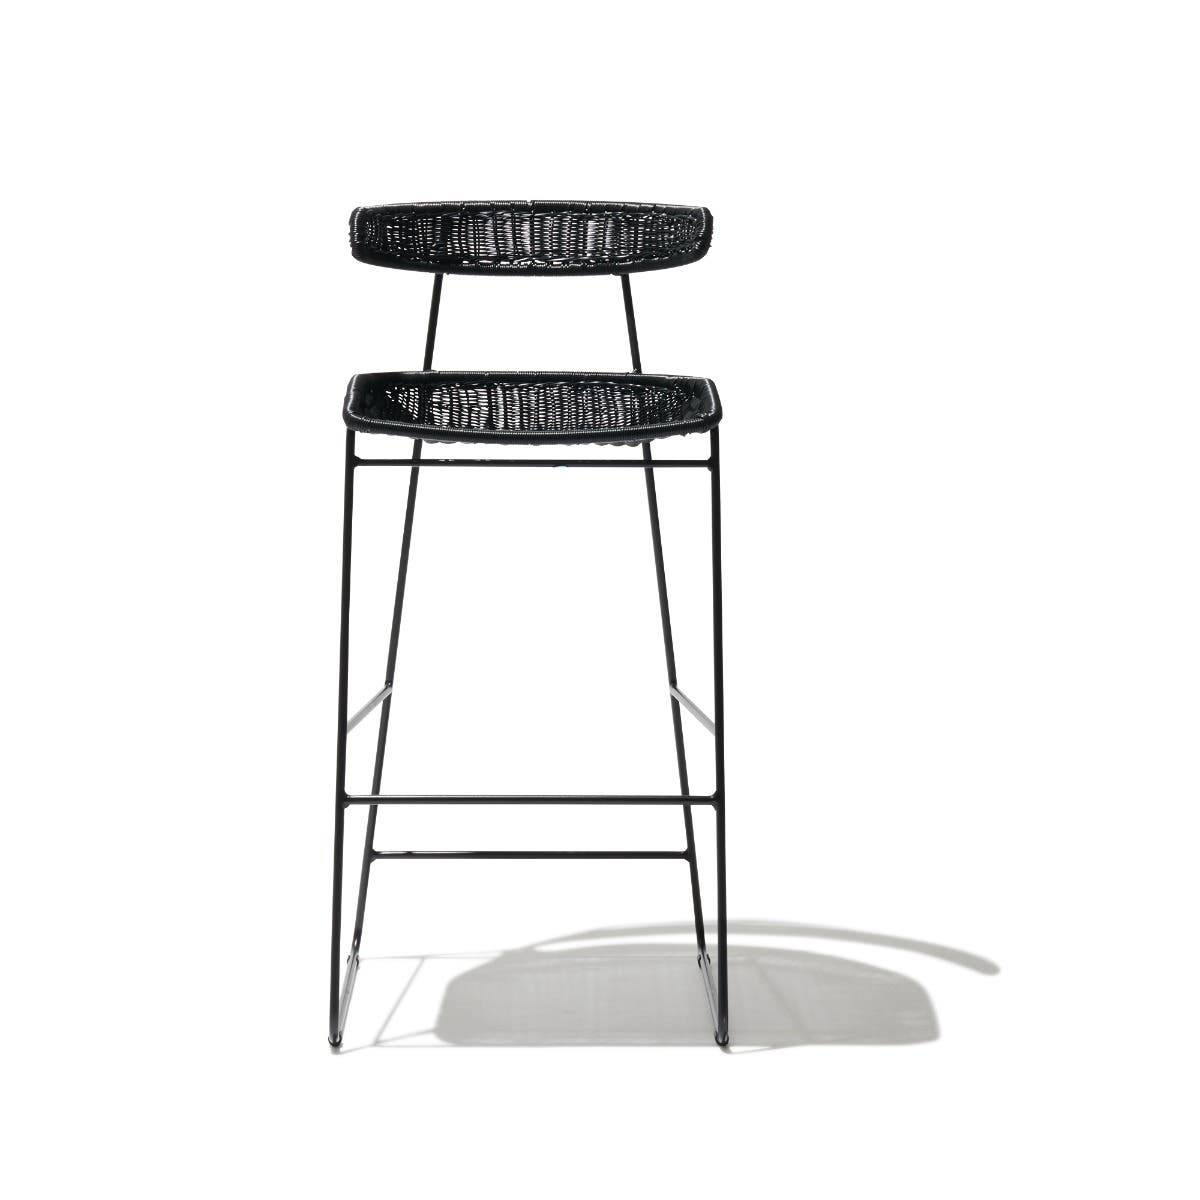 Industry West Rimrow Bar Stool